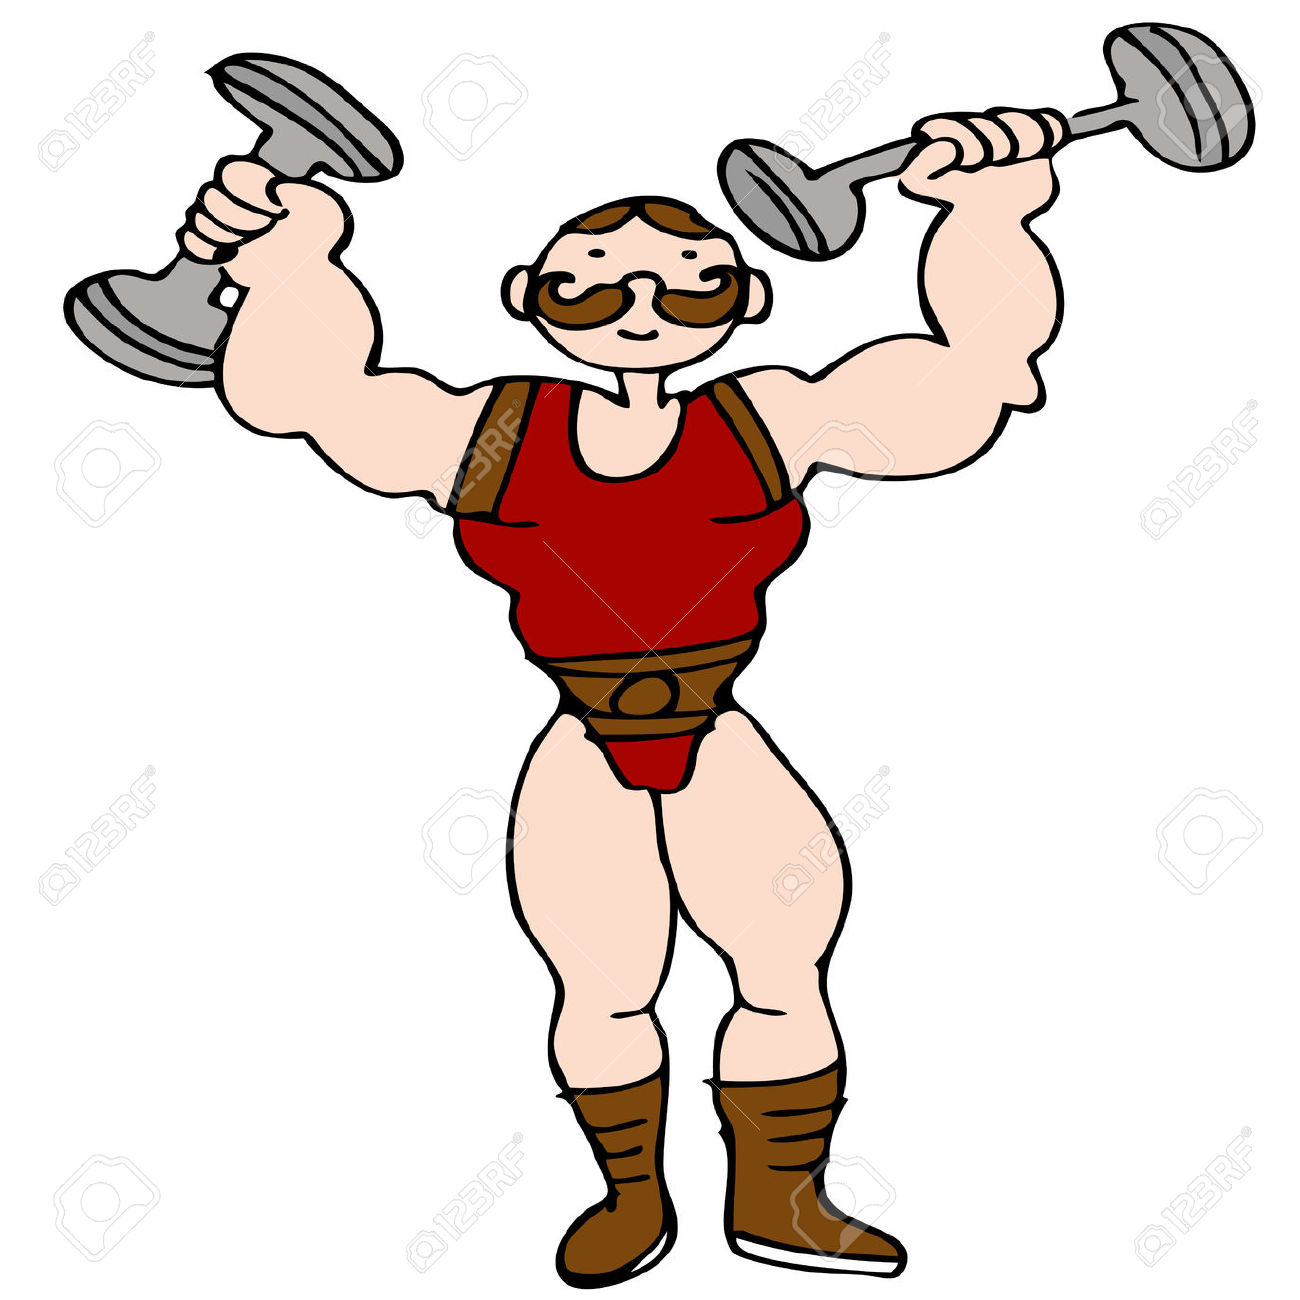 Gallery For Strong Body Clipart.